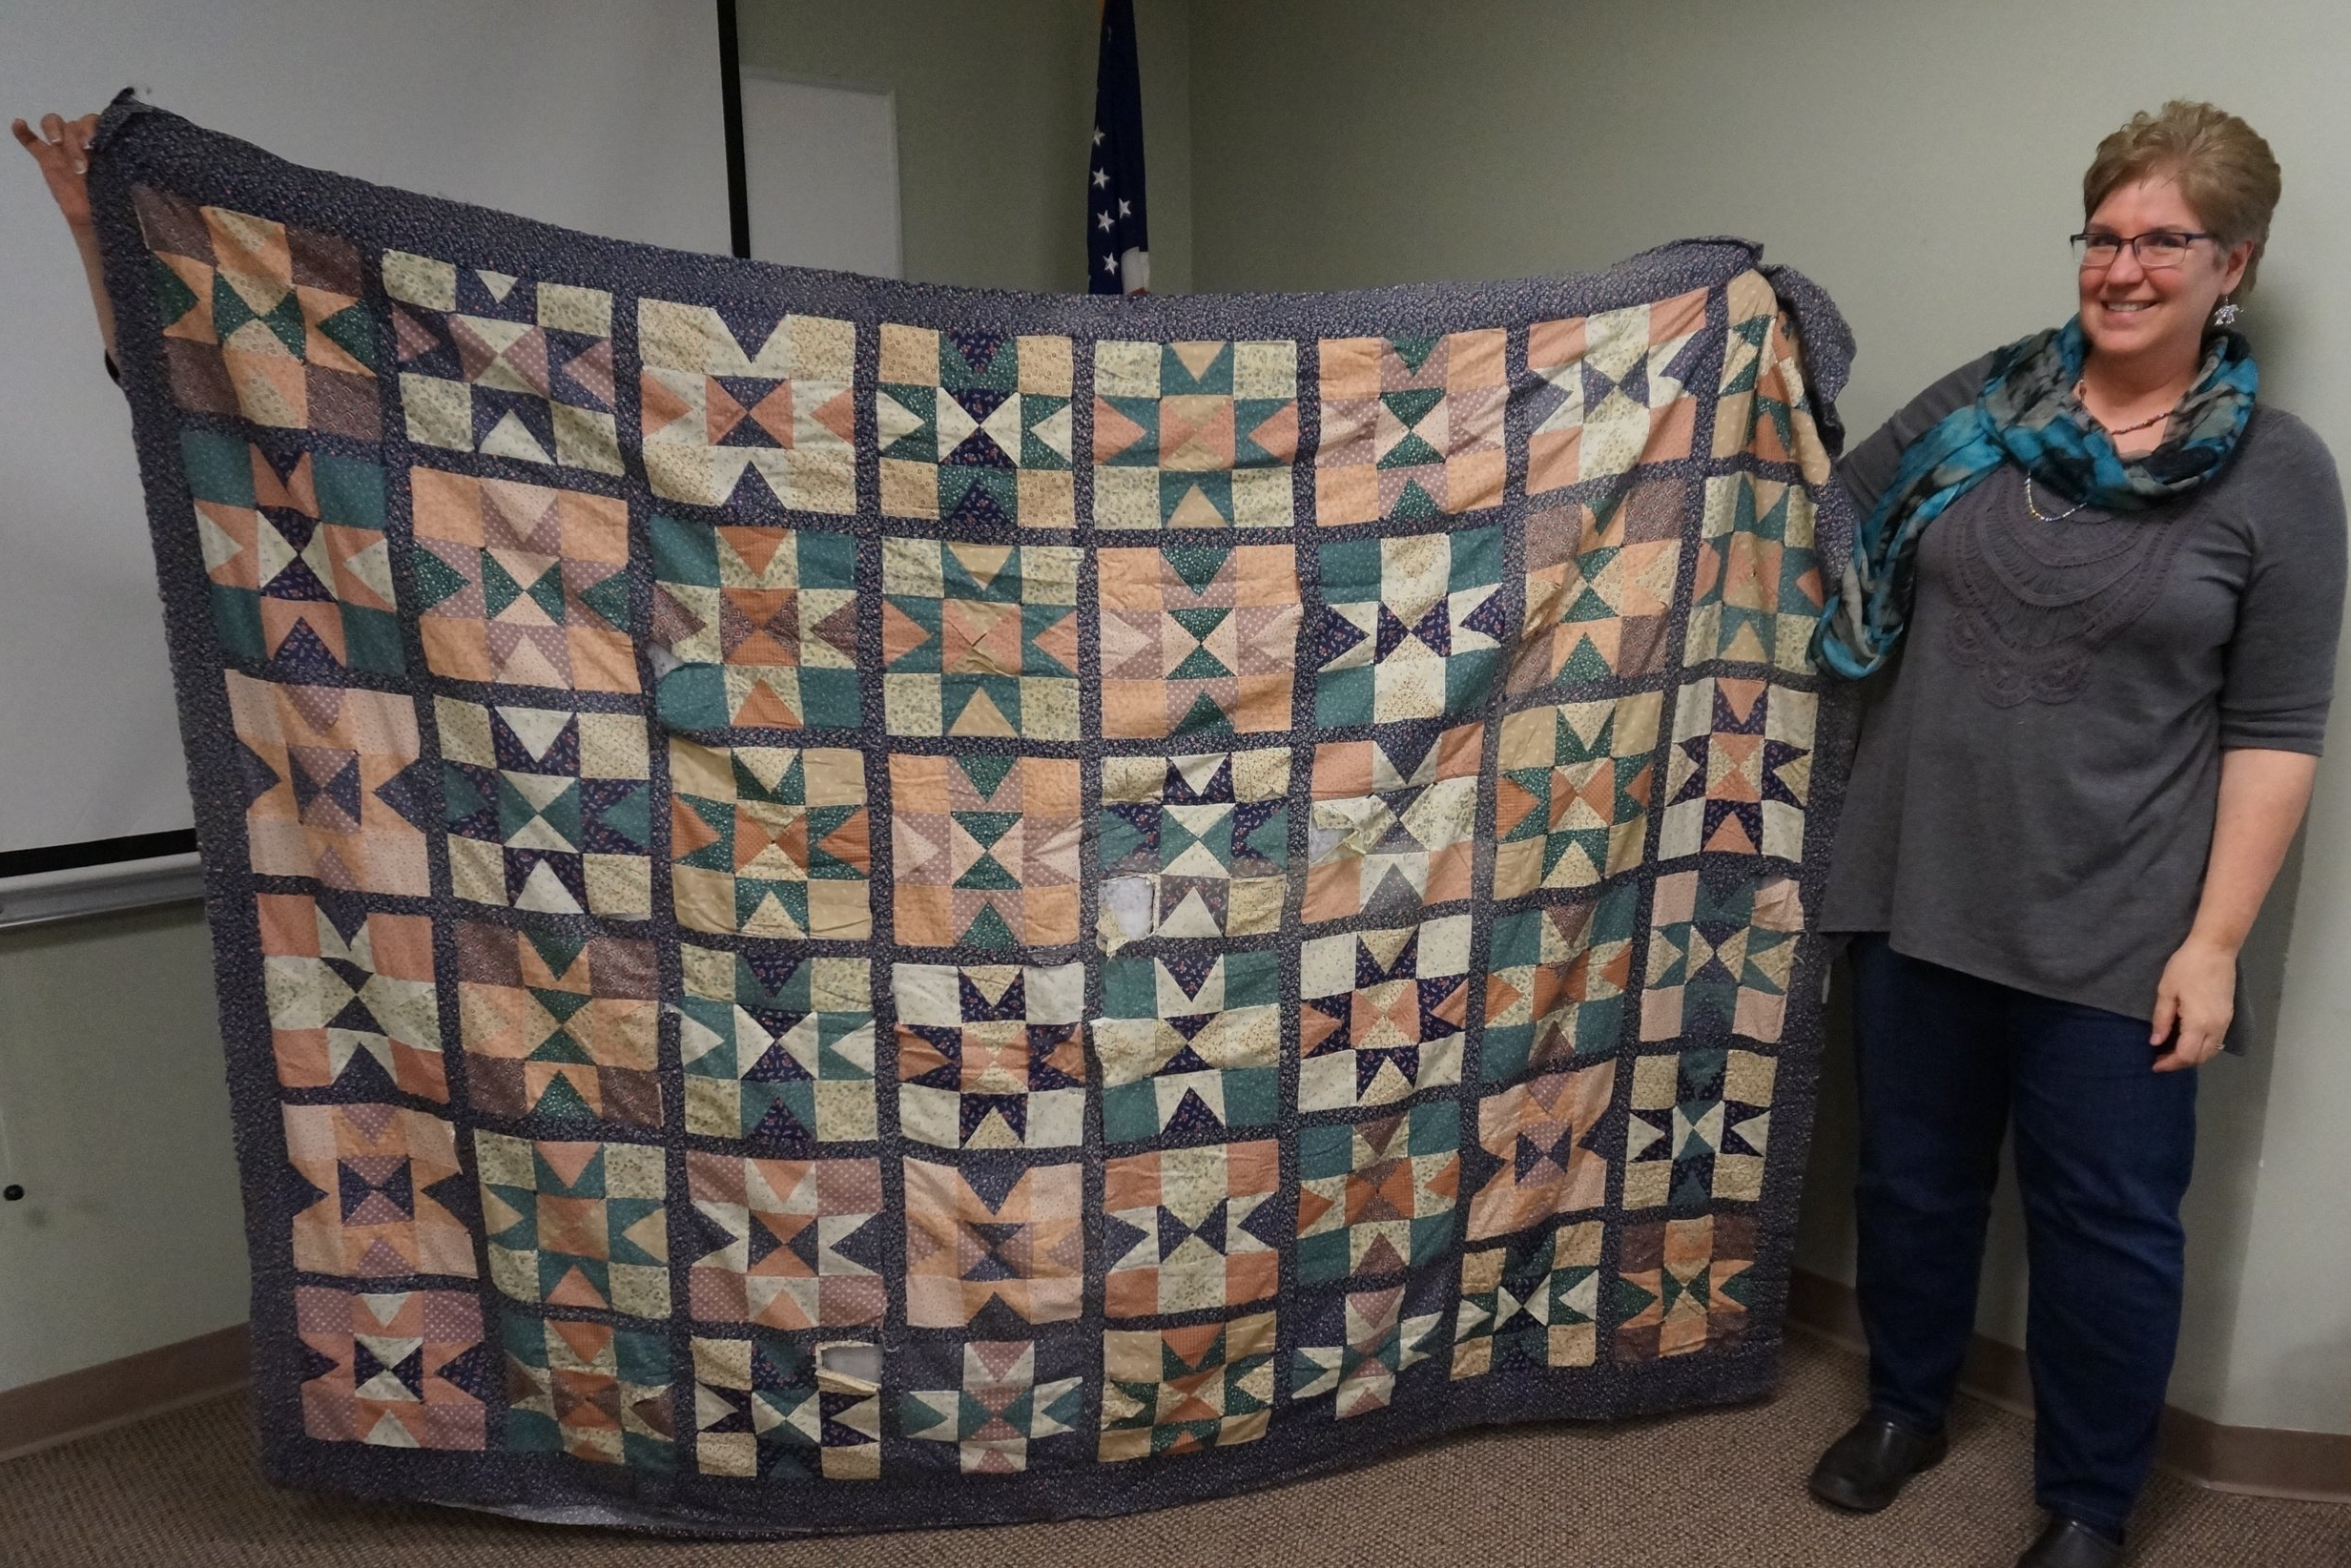 - Suzanne made her first quilt 40 years ago, and her grown son still likes to snuggle with it when he comes home.